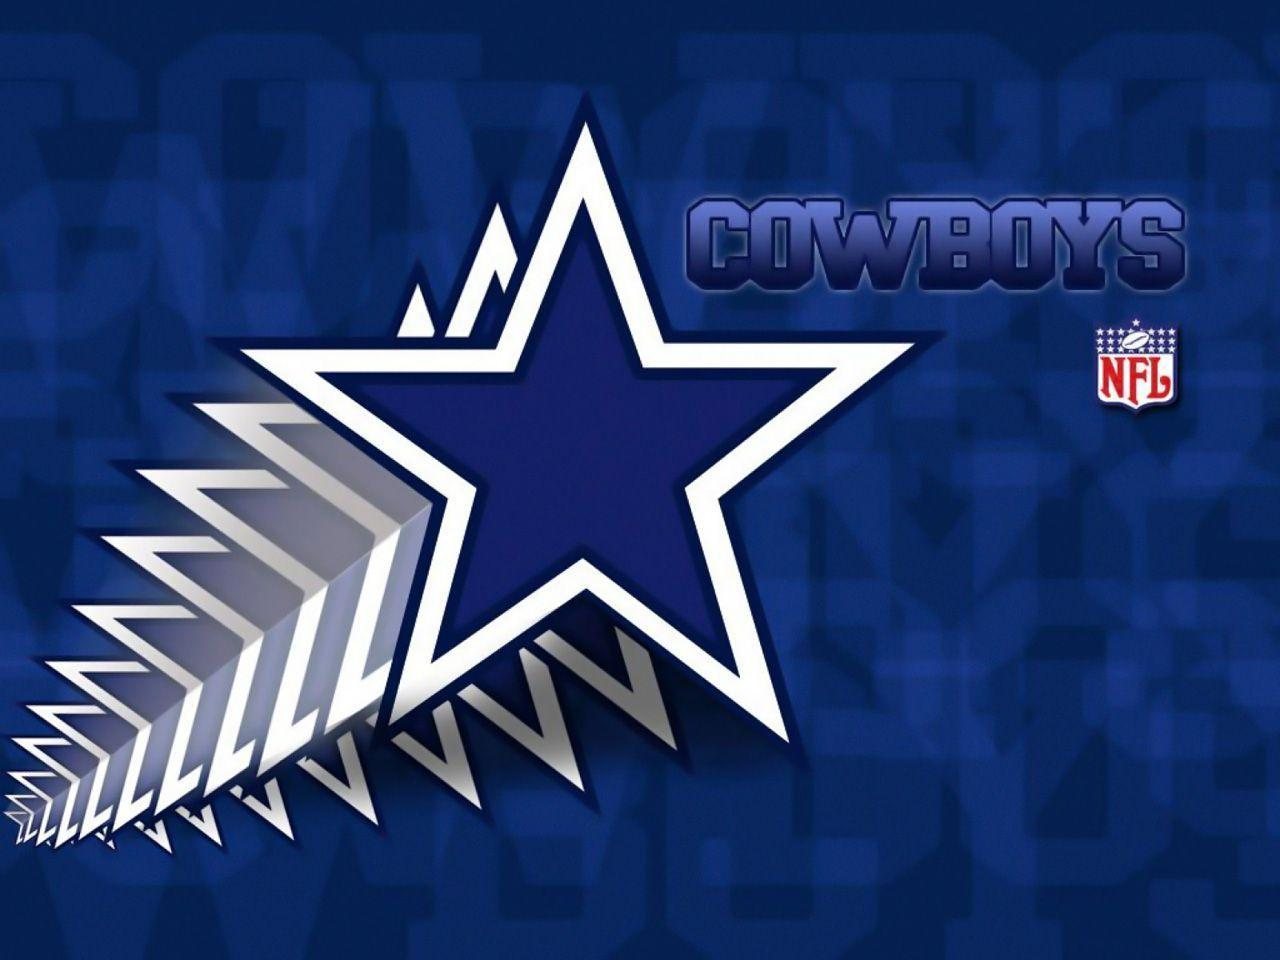 Dallas Cowboys Image Wallpapers  Wallpaper Cave